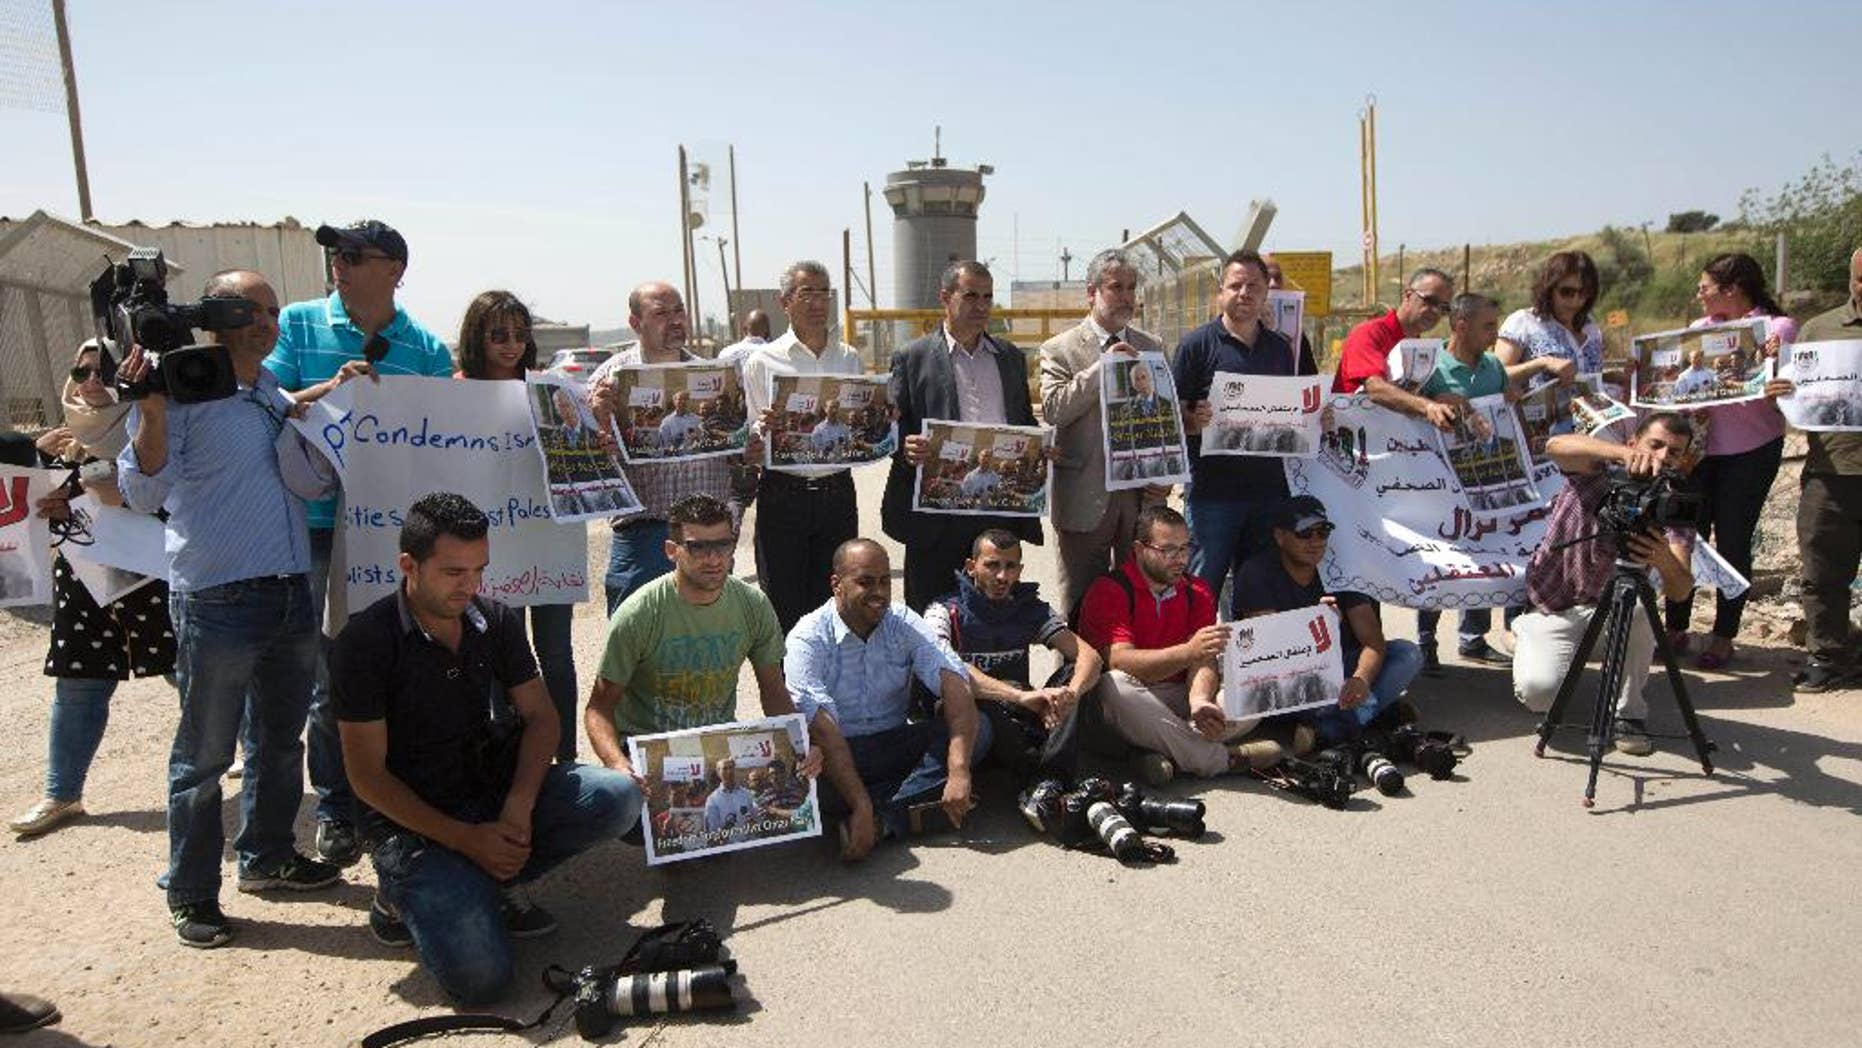 Palestinian journalists hold banners during a protest calling for the release of Palestinian journalist Omar Nazzal, who was arrested by Israeli authorities over the weekend, outside Ofer military prison near the West Bank city of Ramallah, Tuesday, April 26, 2016. (AP Photo/Majdi Mohammed)